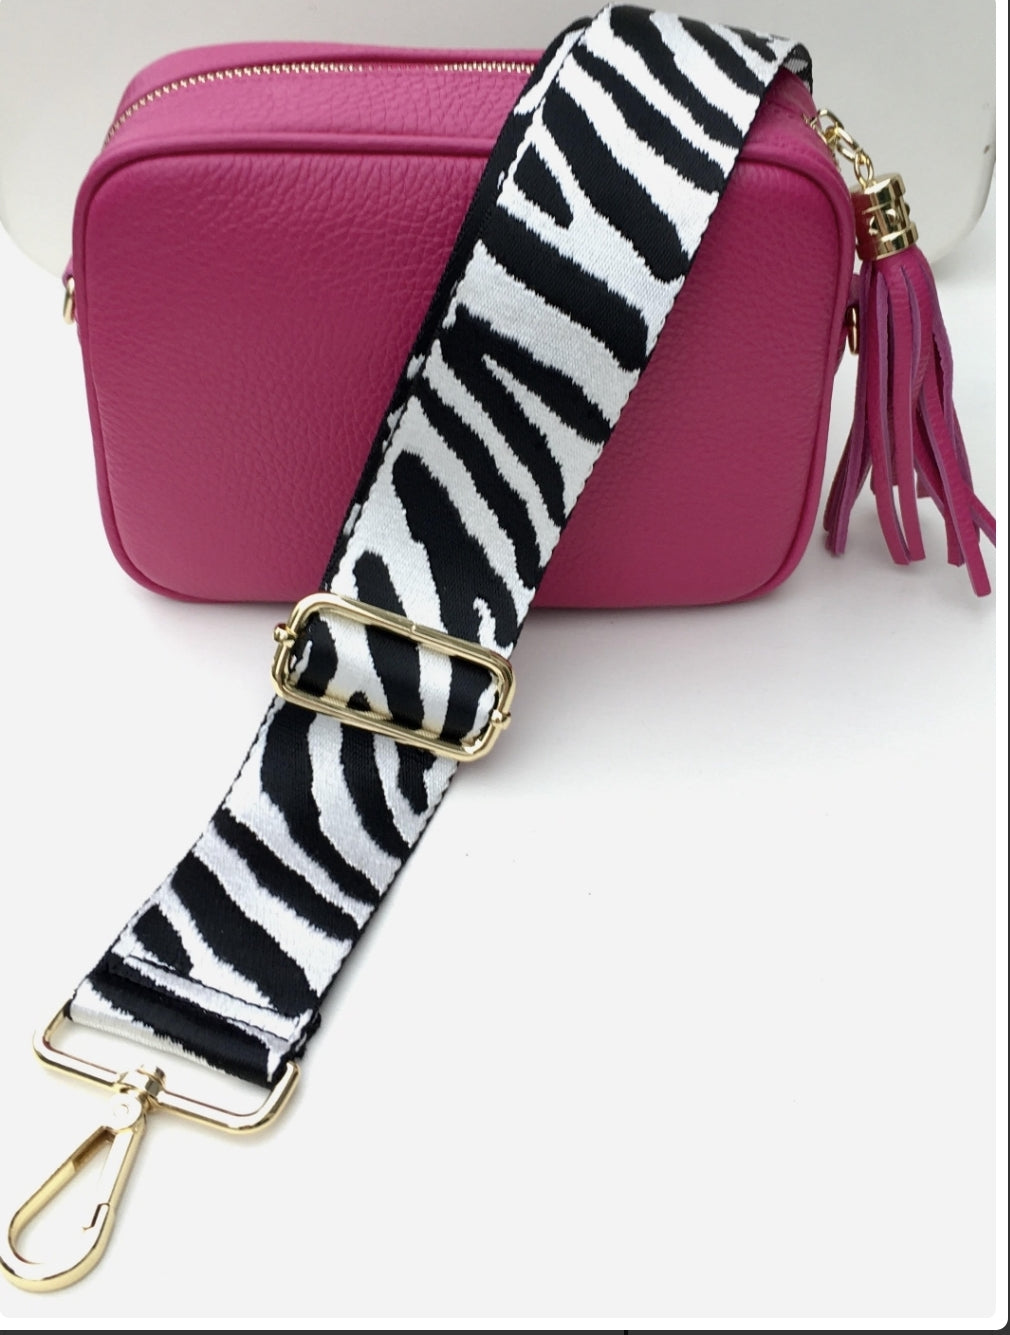 Georgia Crossbody Bag (Pink)